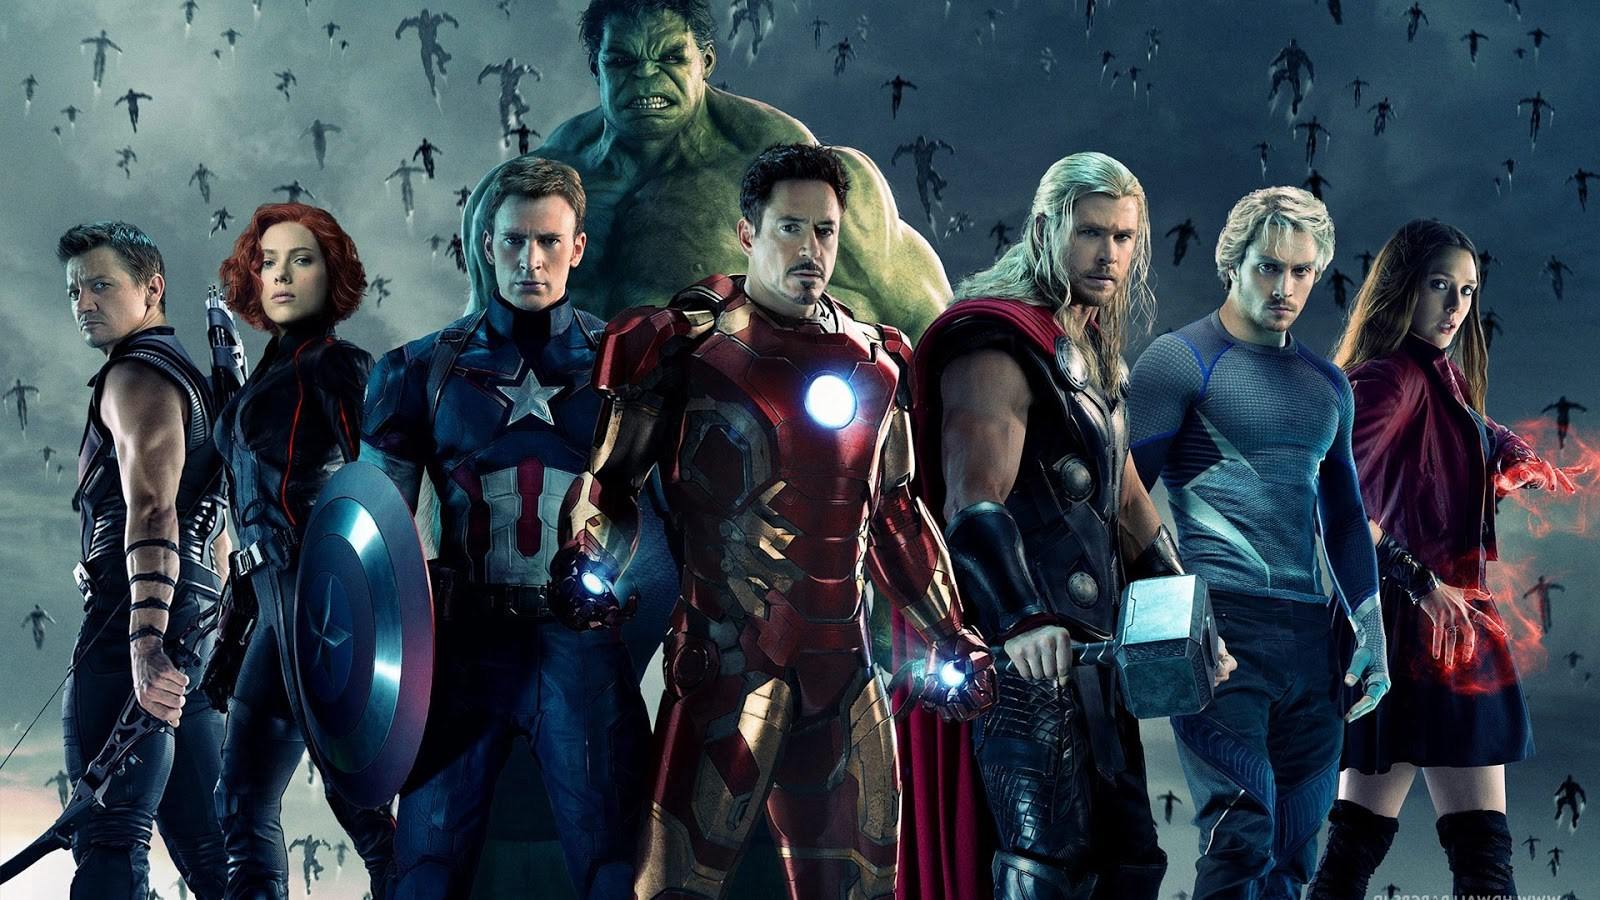 The Avengers line-up - Hawkeye, Black Widow, Captain America, Hulk, Iron Man, Thor, Quicksilver, Scarlet Witch